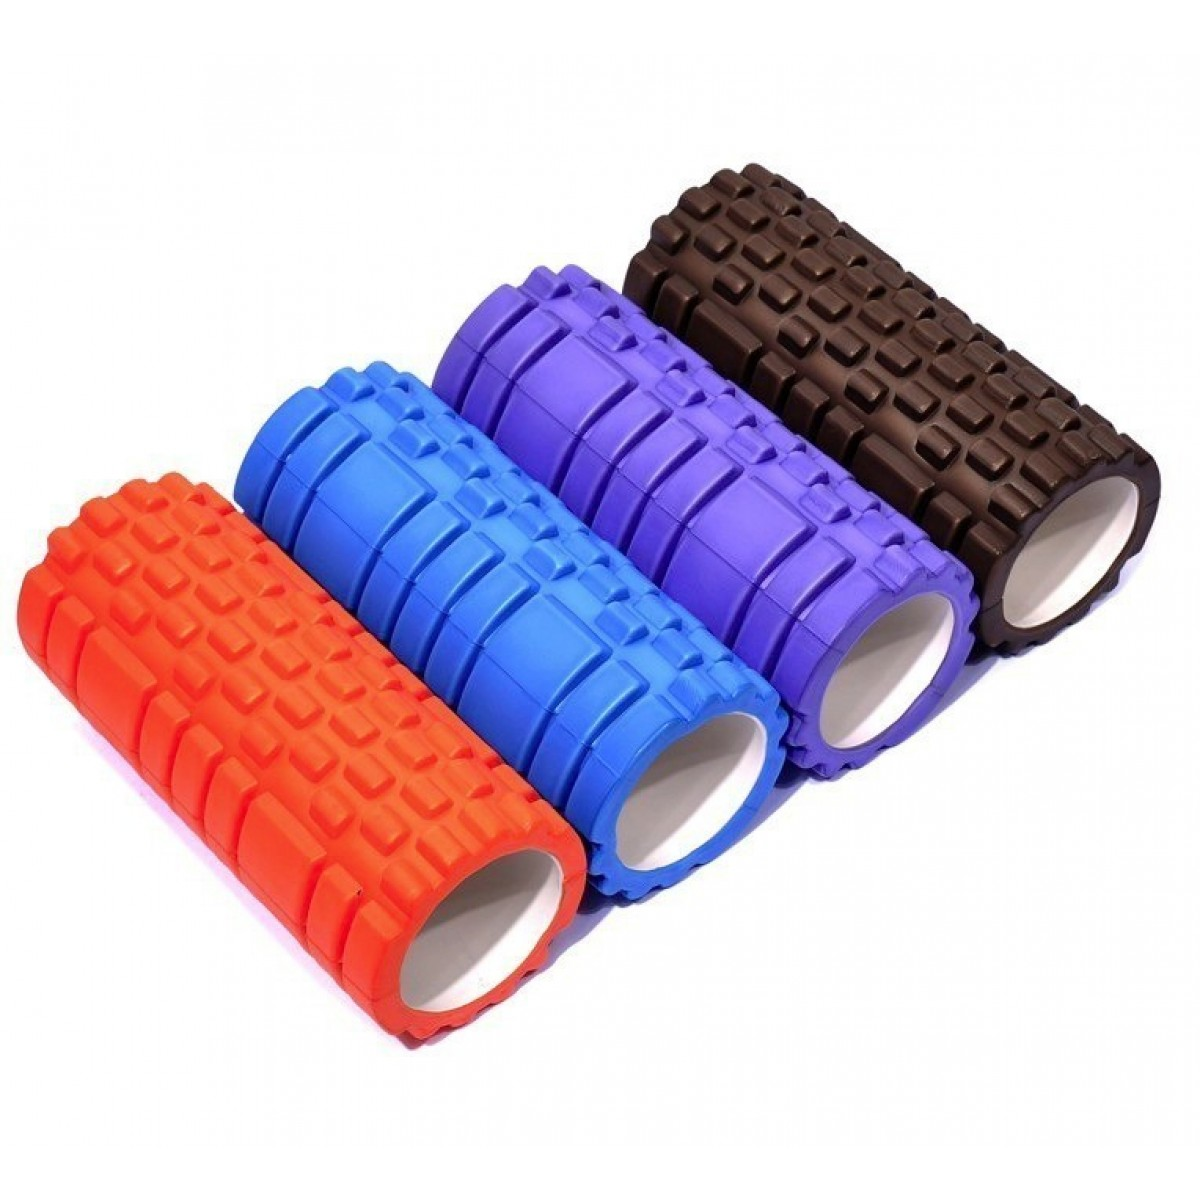 hot-sale-yoga-eva-foam-roller-grid-trigger-point-gym-massage-font-b-spine-b-font